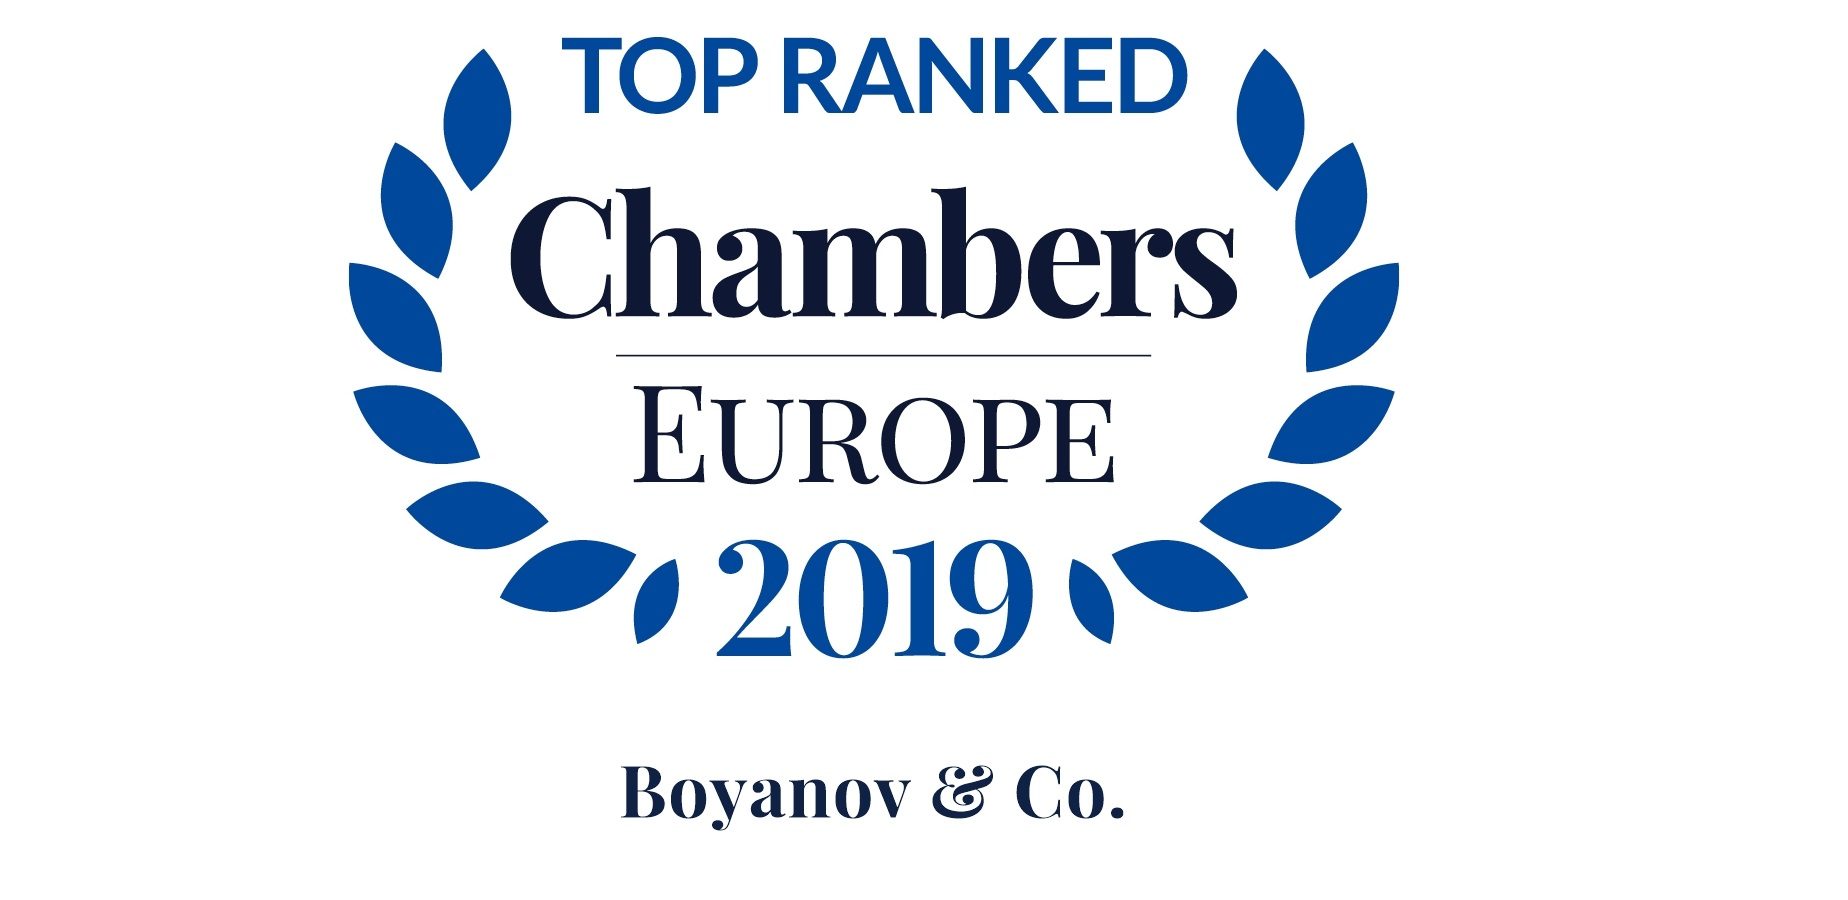 boyanov-co-top-ranked-in-chambers-europe-2019